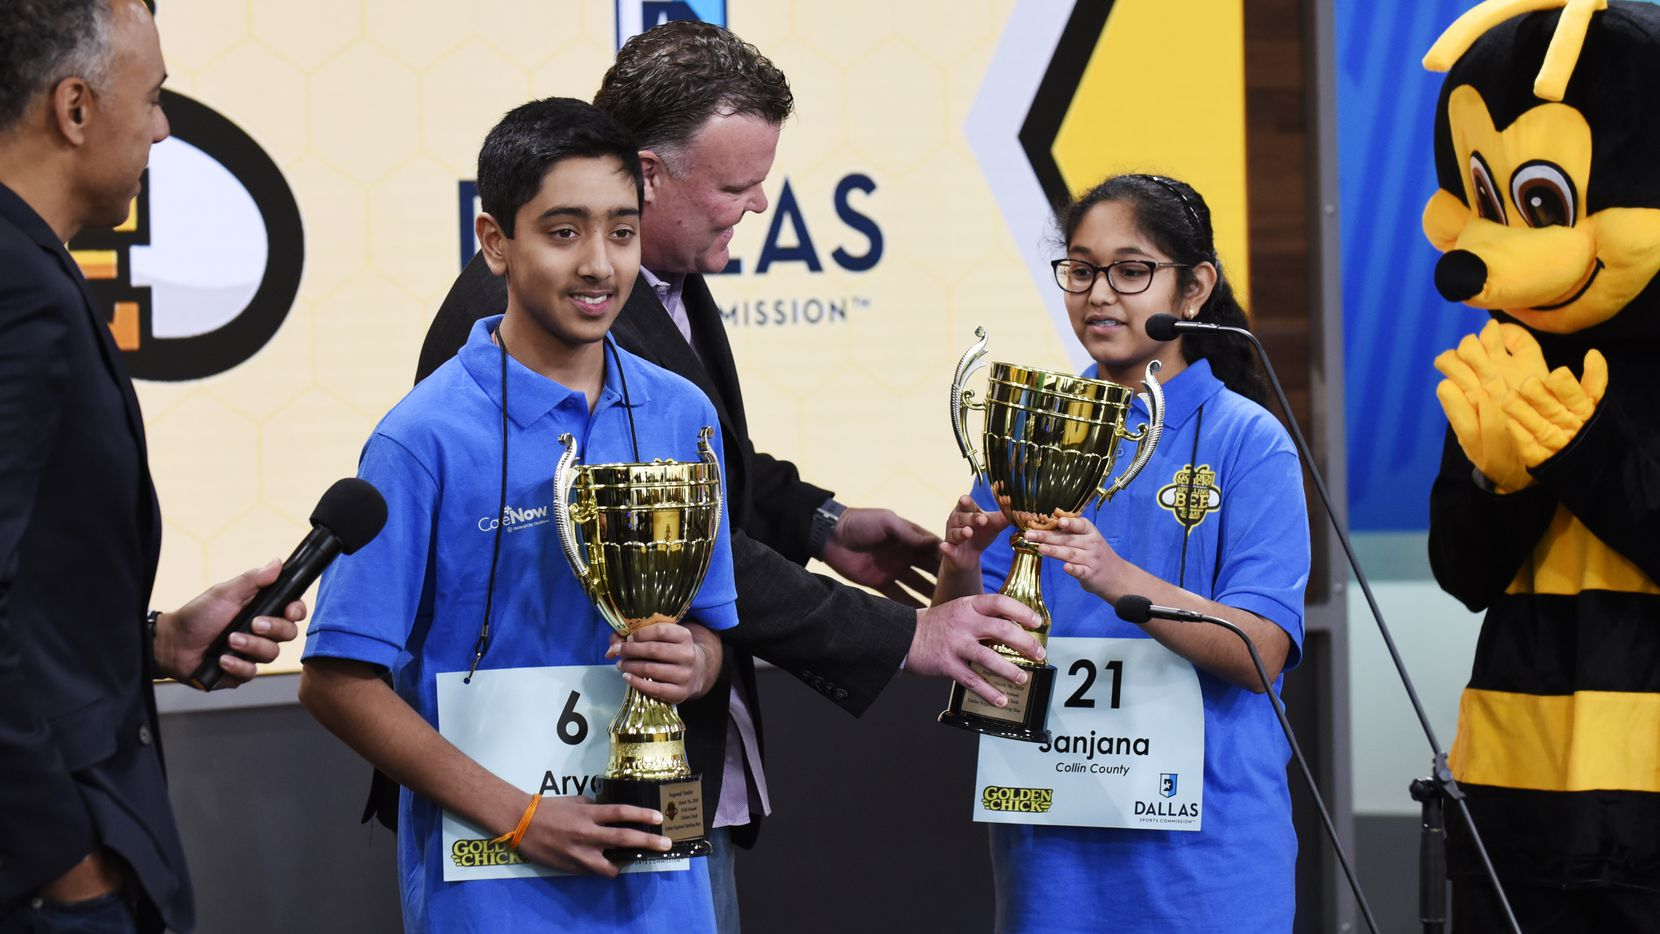 Golden Chick President Jim Stevens hands Dallas Regional Spelling Bee championship trophies to Arya Reddyvari (left) and Sanjana Kota, both of Collin County. The middle-school students shared the championship after 26 rounds of competition.